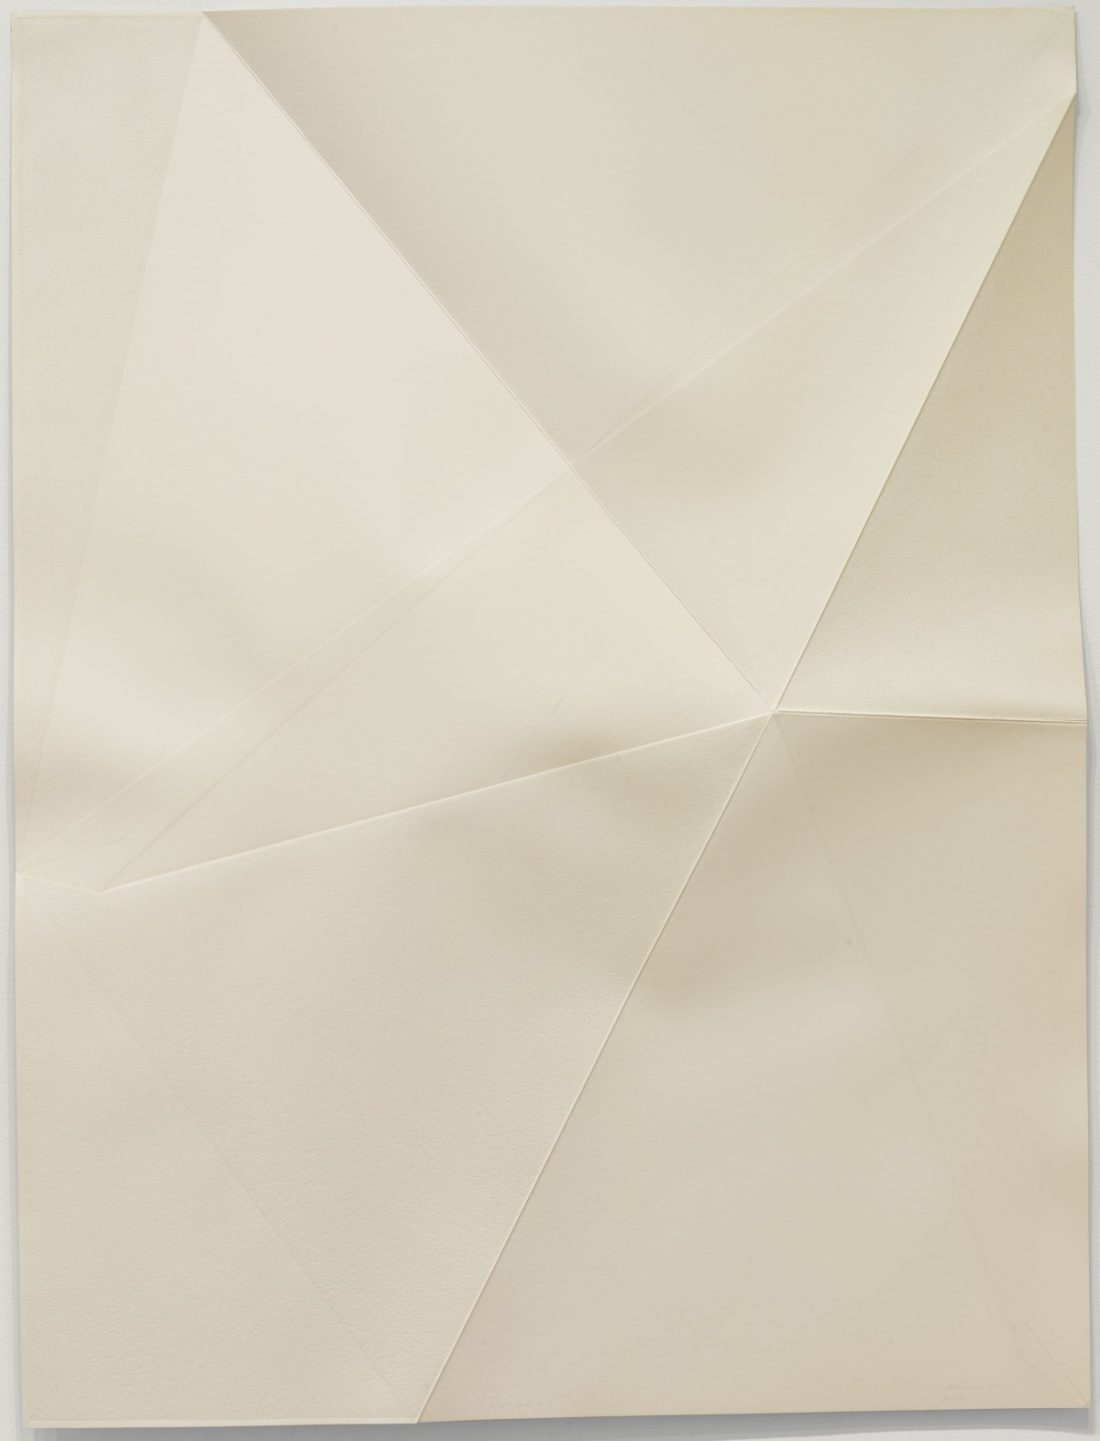 Dorothea Rockburne, Untitled from Locus, 1972. Collection of the Museum of Modern Art, New York.